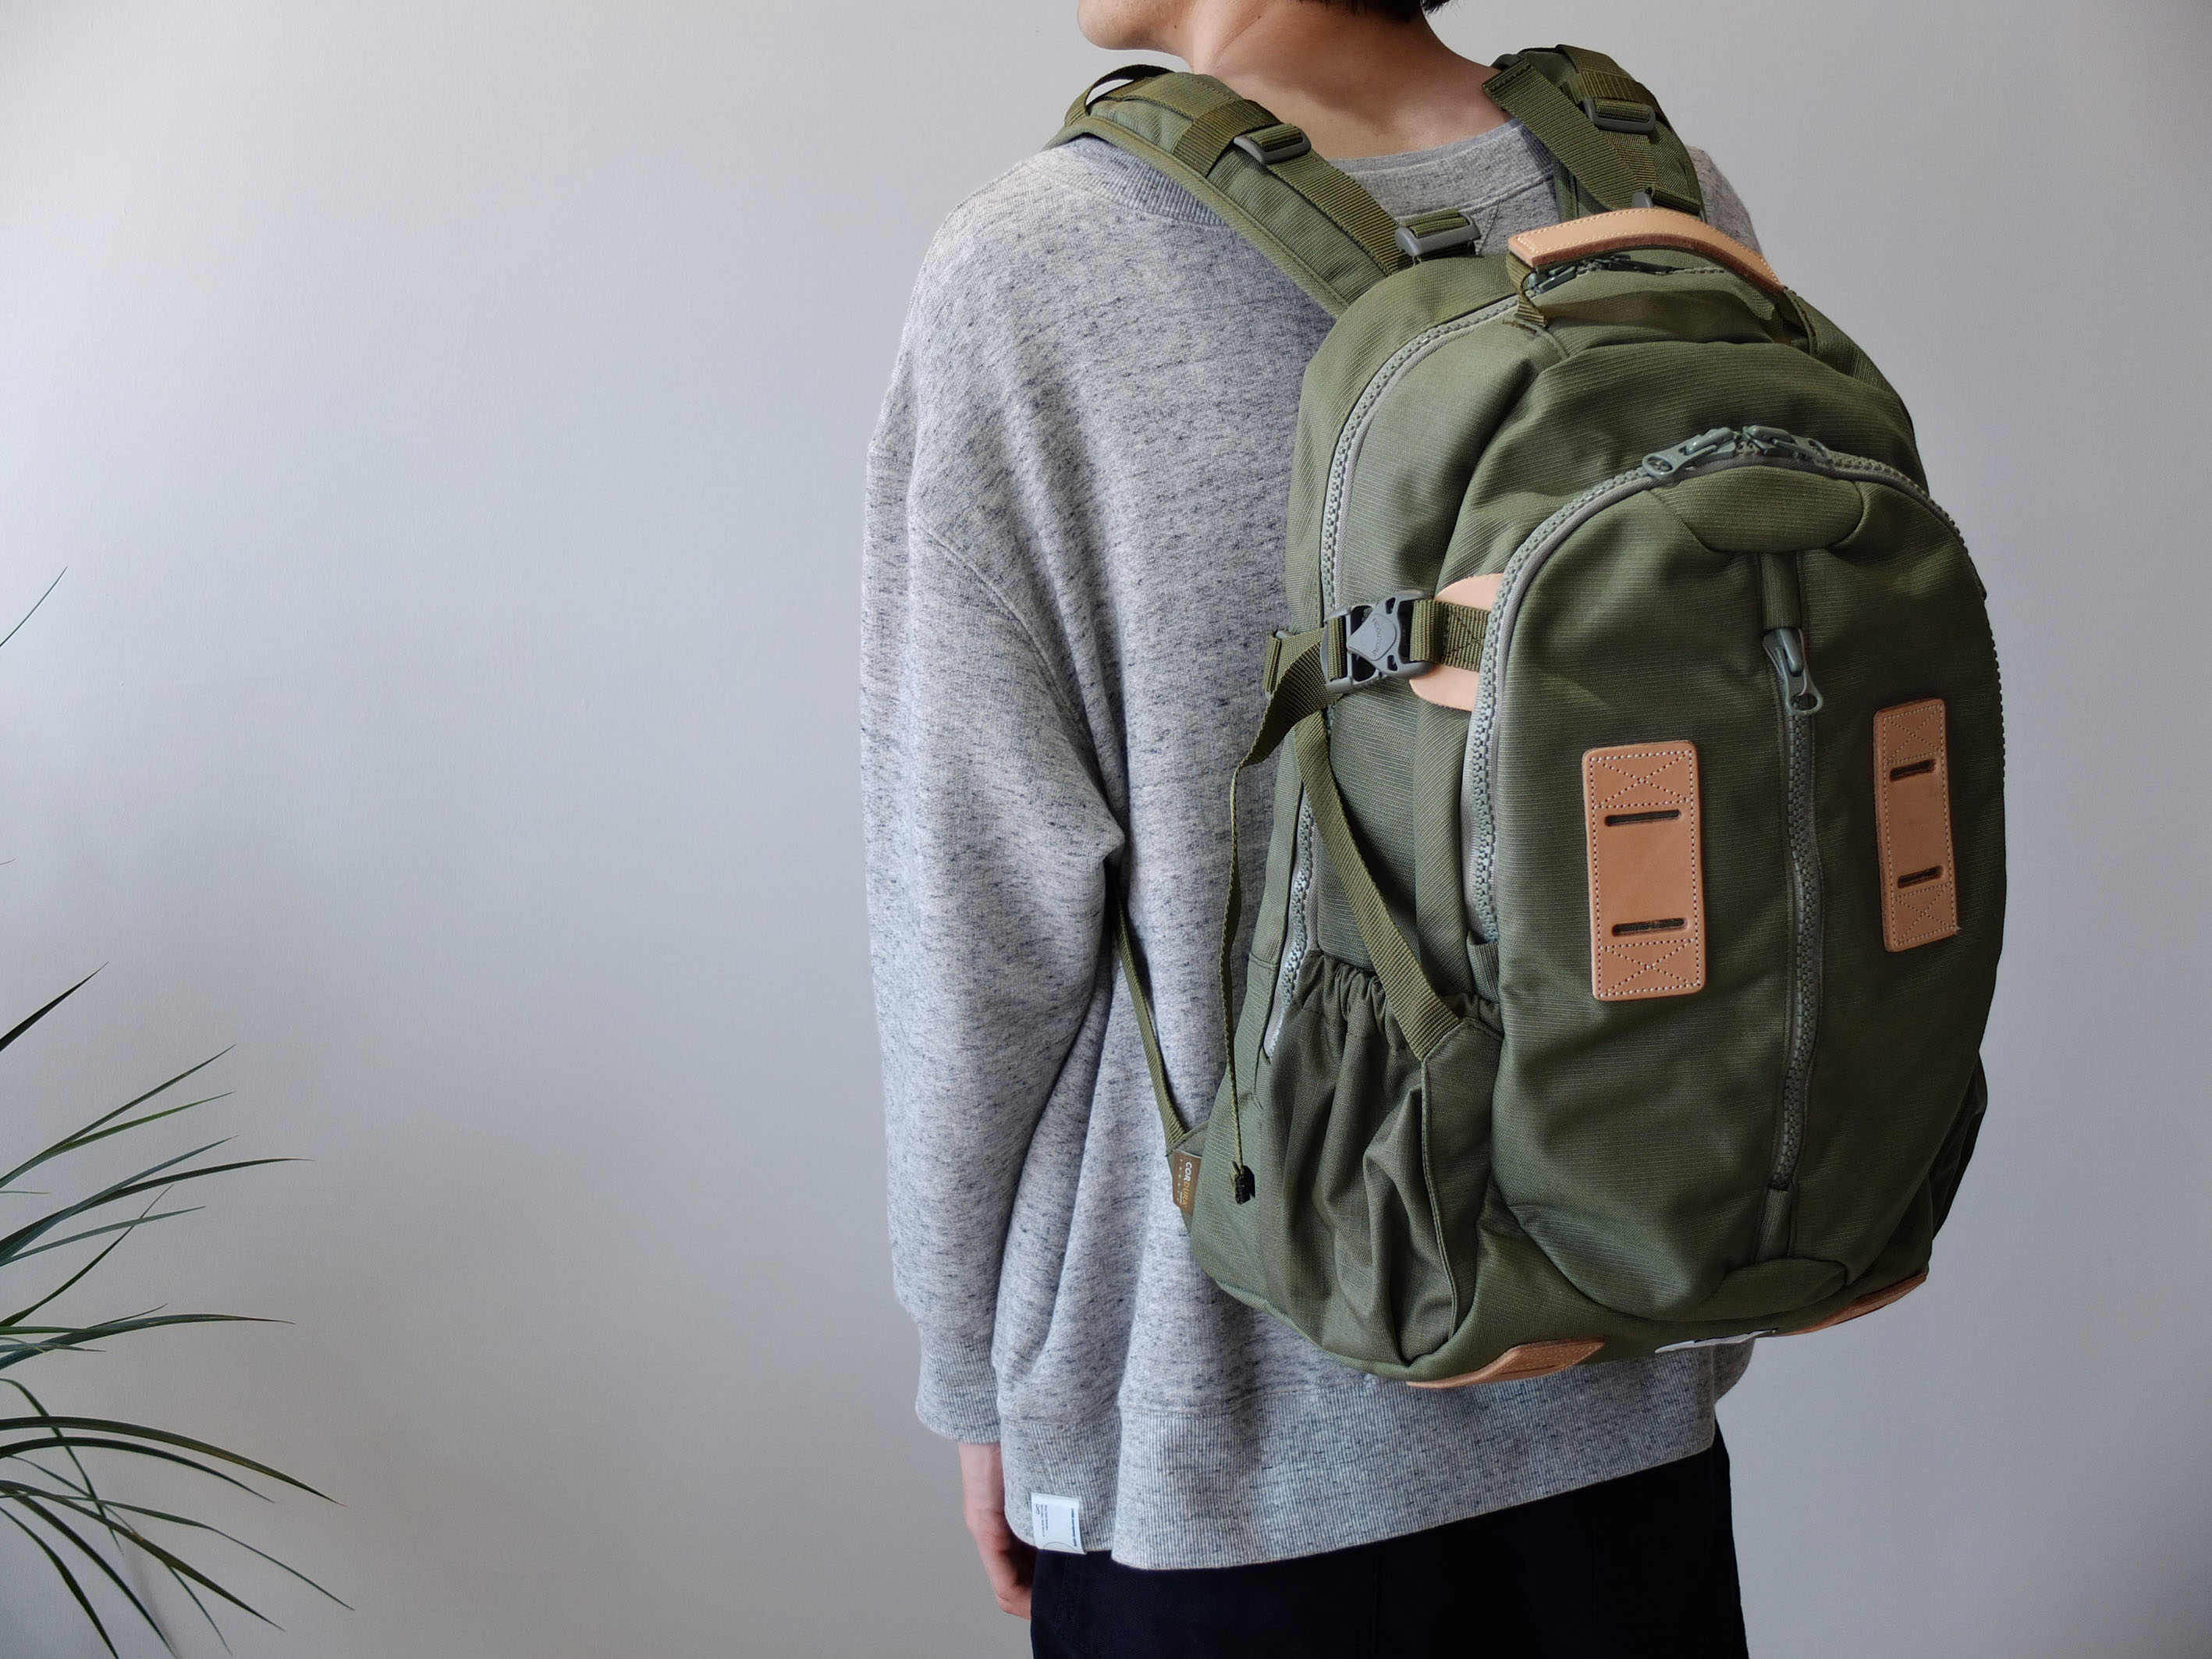 ficouture_backpack_b